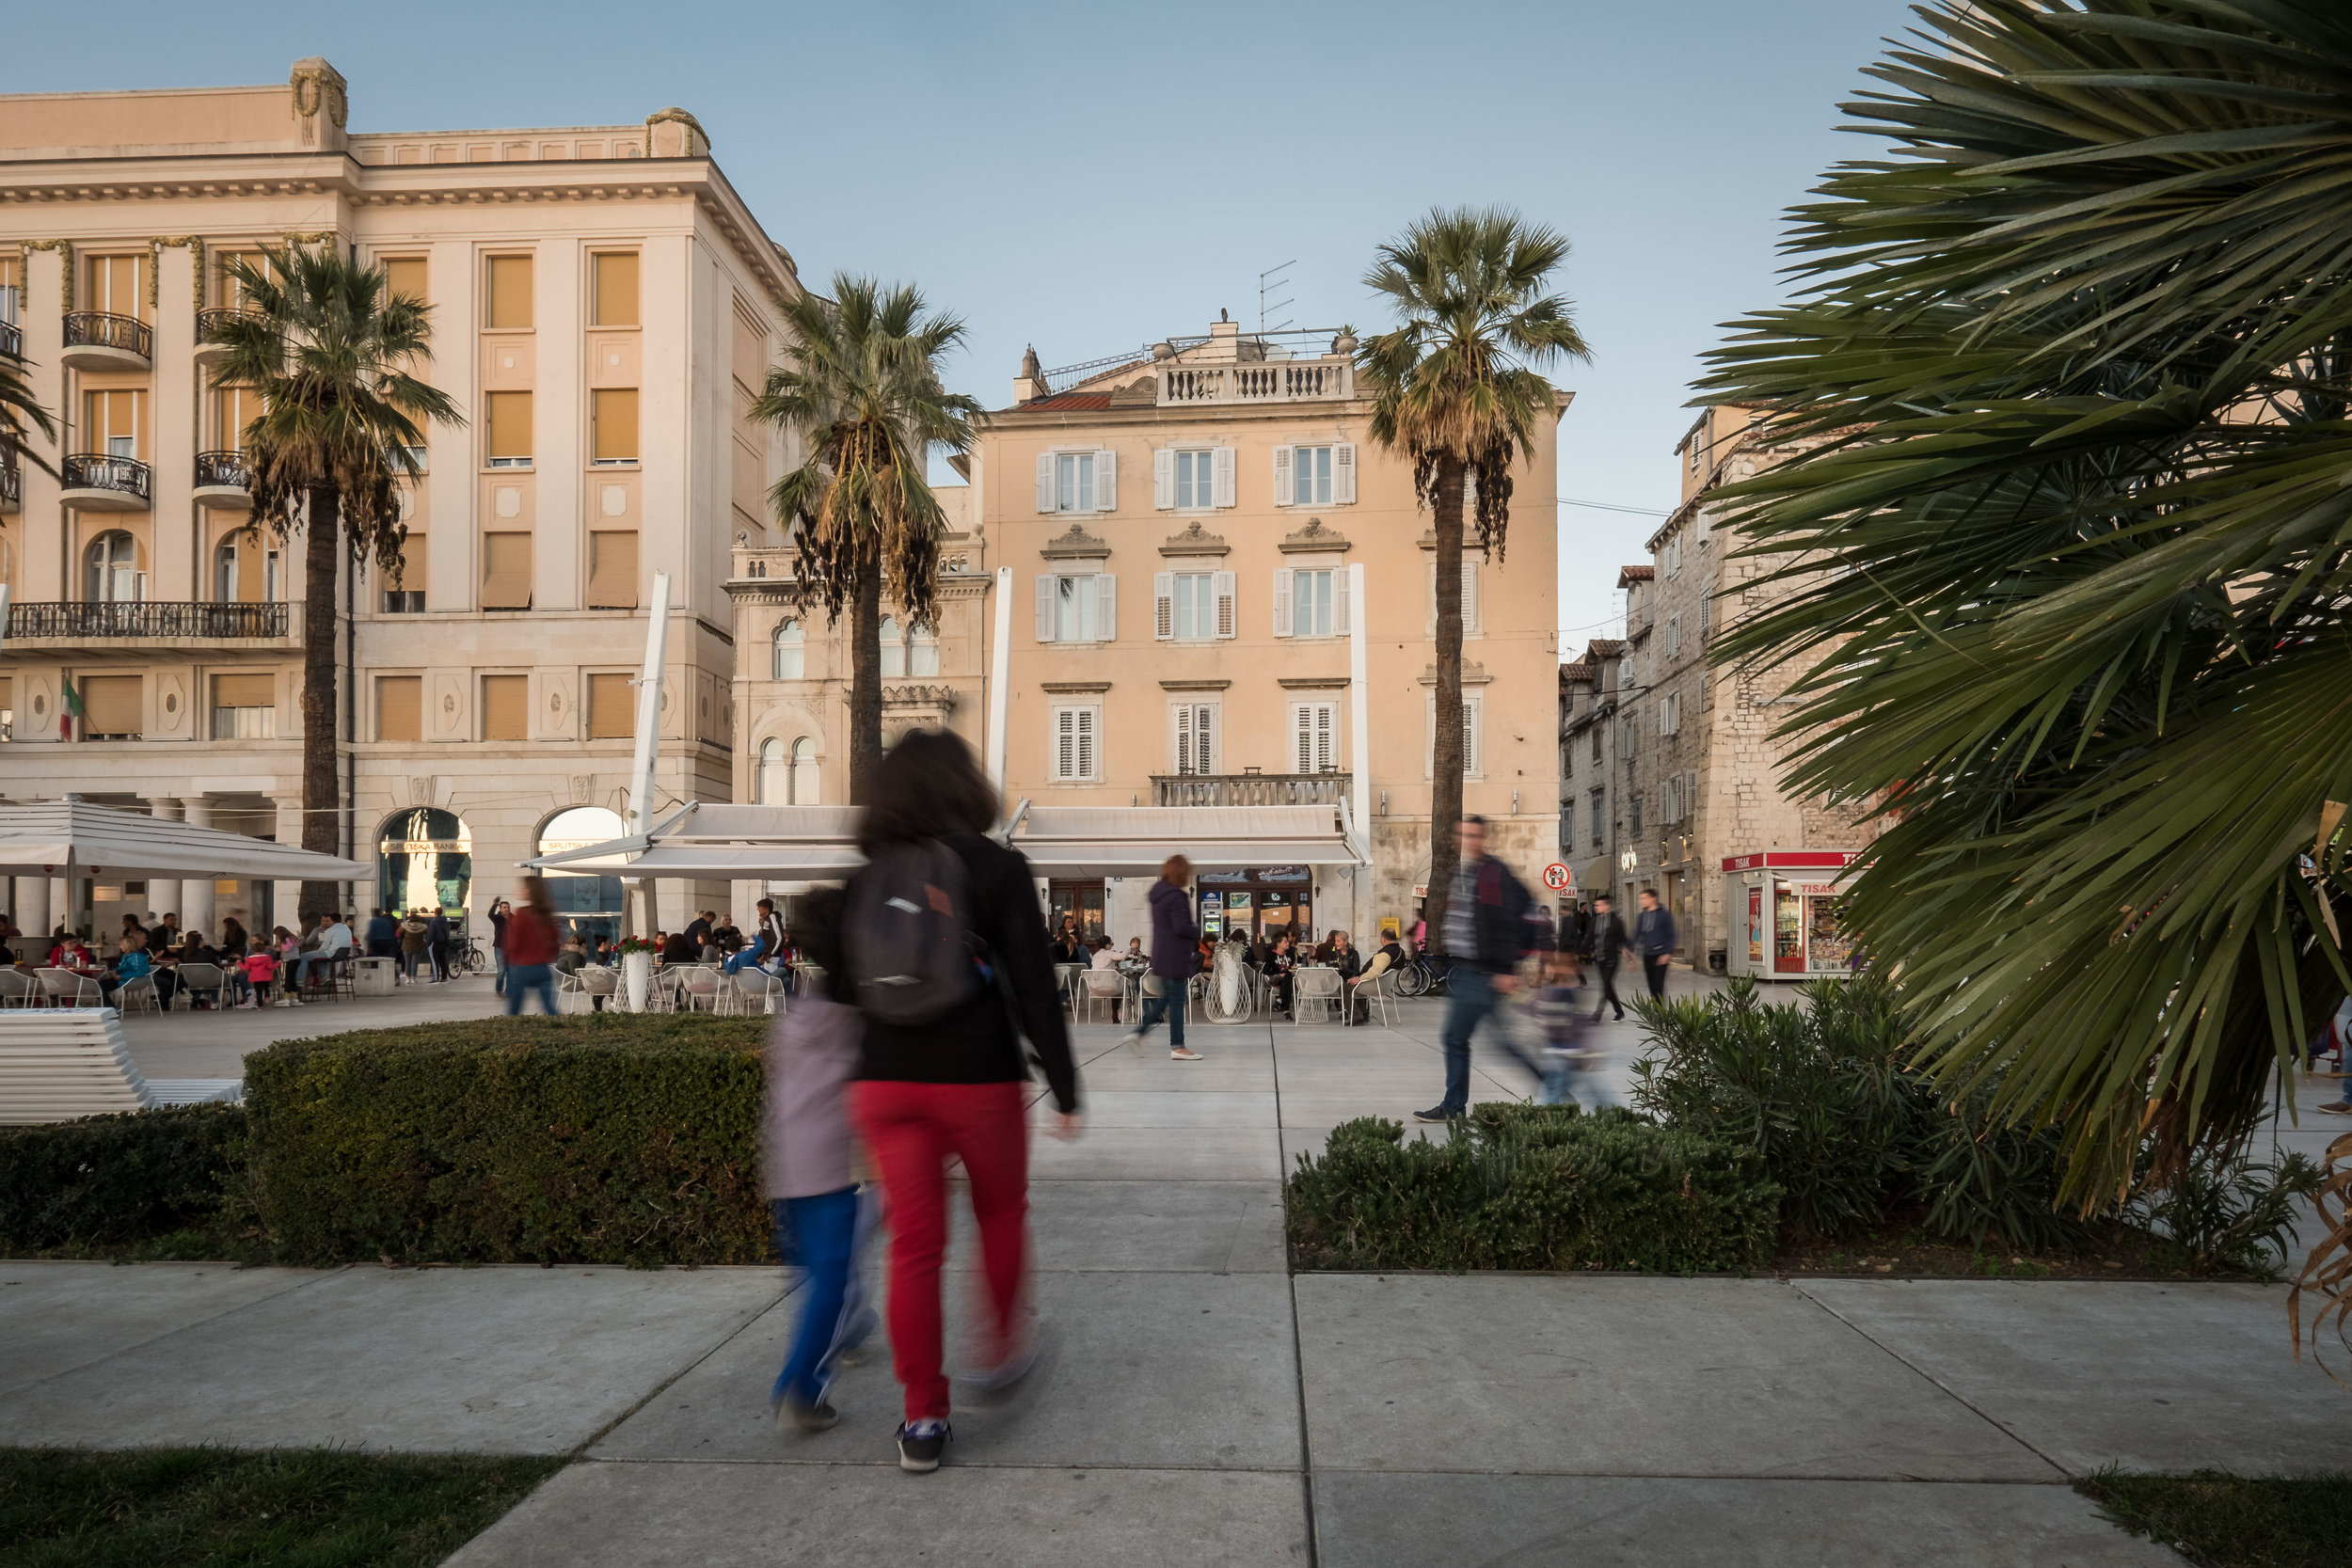 The car-free waterfront of Split, Croatia, a stunning example of people-oriented spaces done right